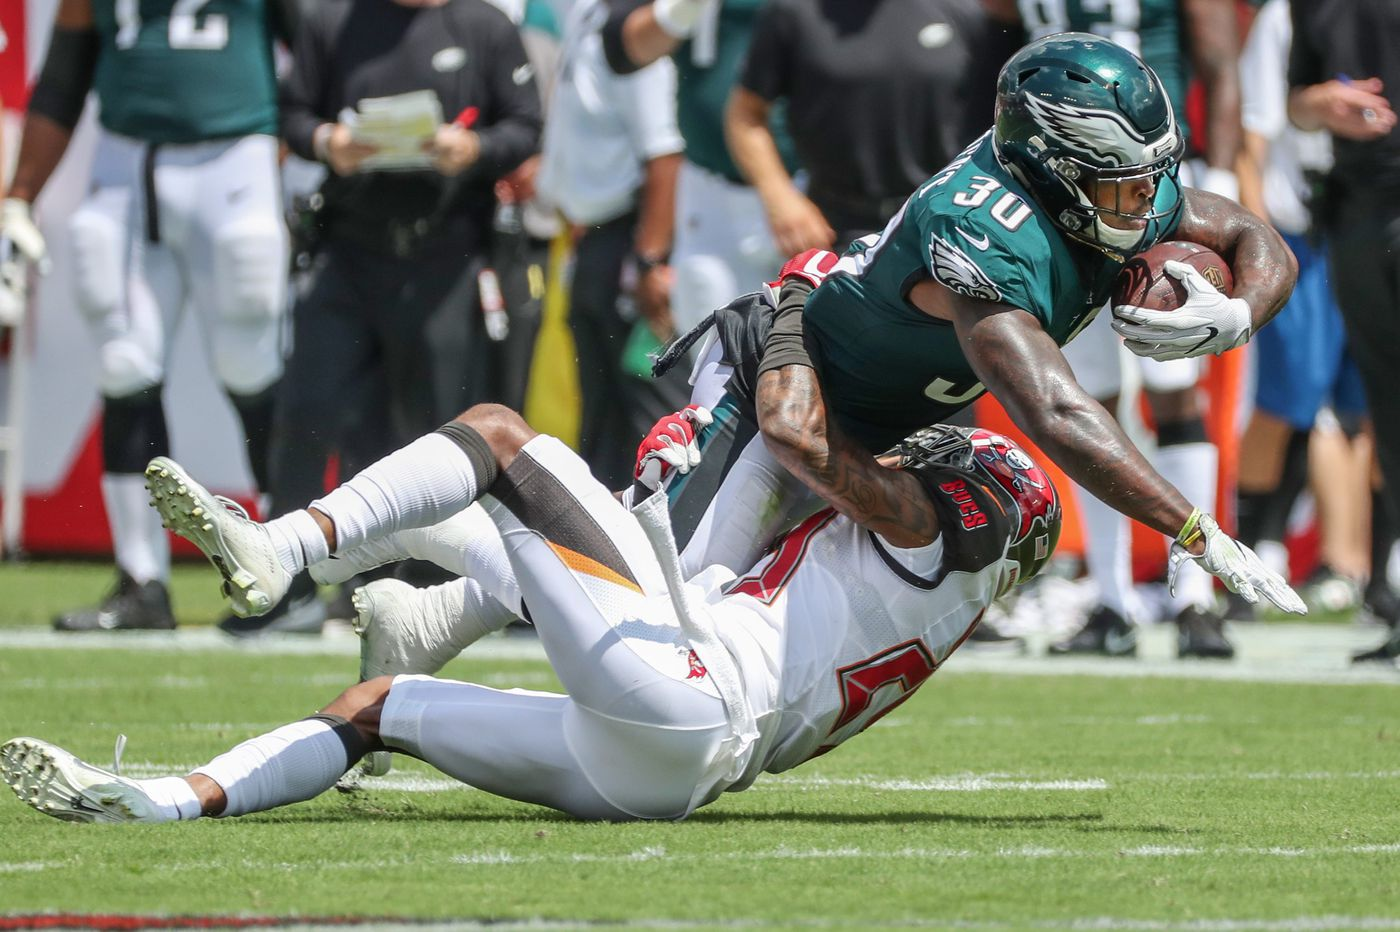 Eagles-Bucs: Who's up, who's down after Birds' loss | Jeff McLane